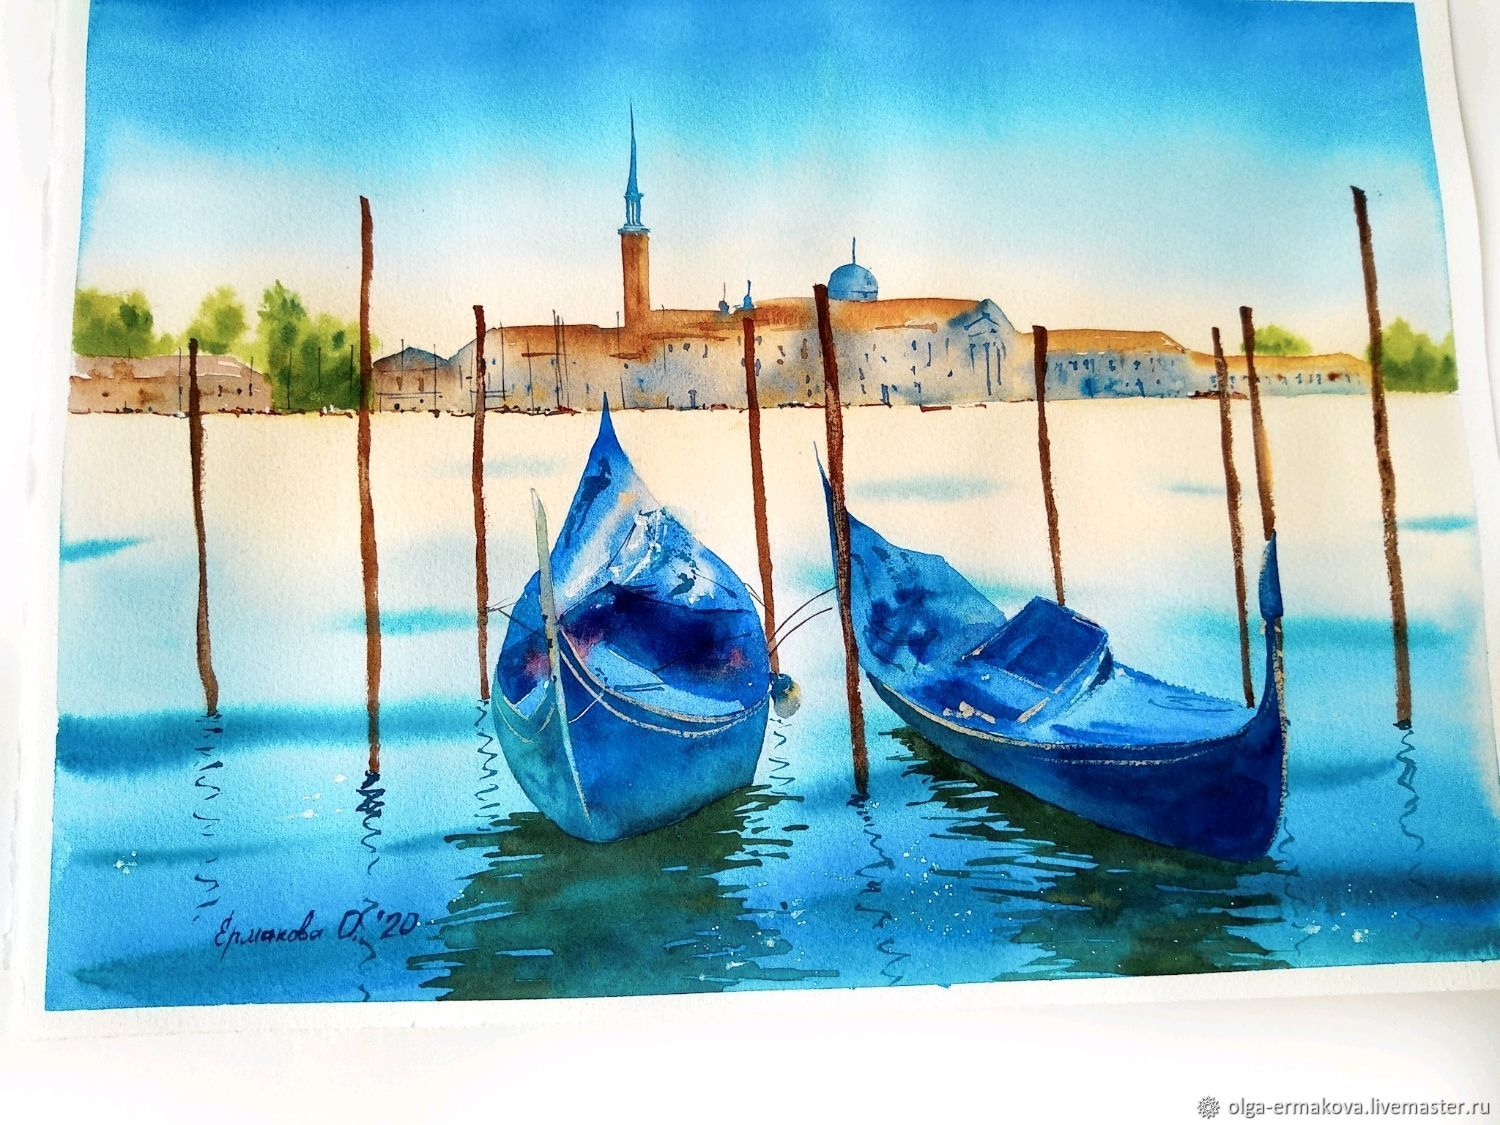 Venice in a watercolor painting with the sea as a gift, Pictures, Moscow,  Фото №1